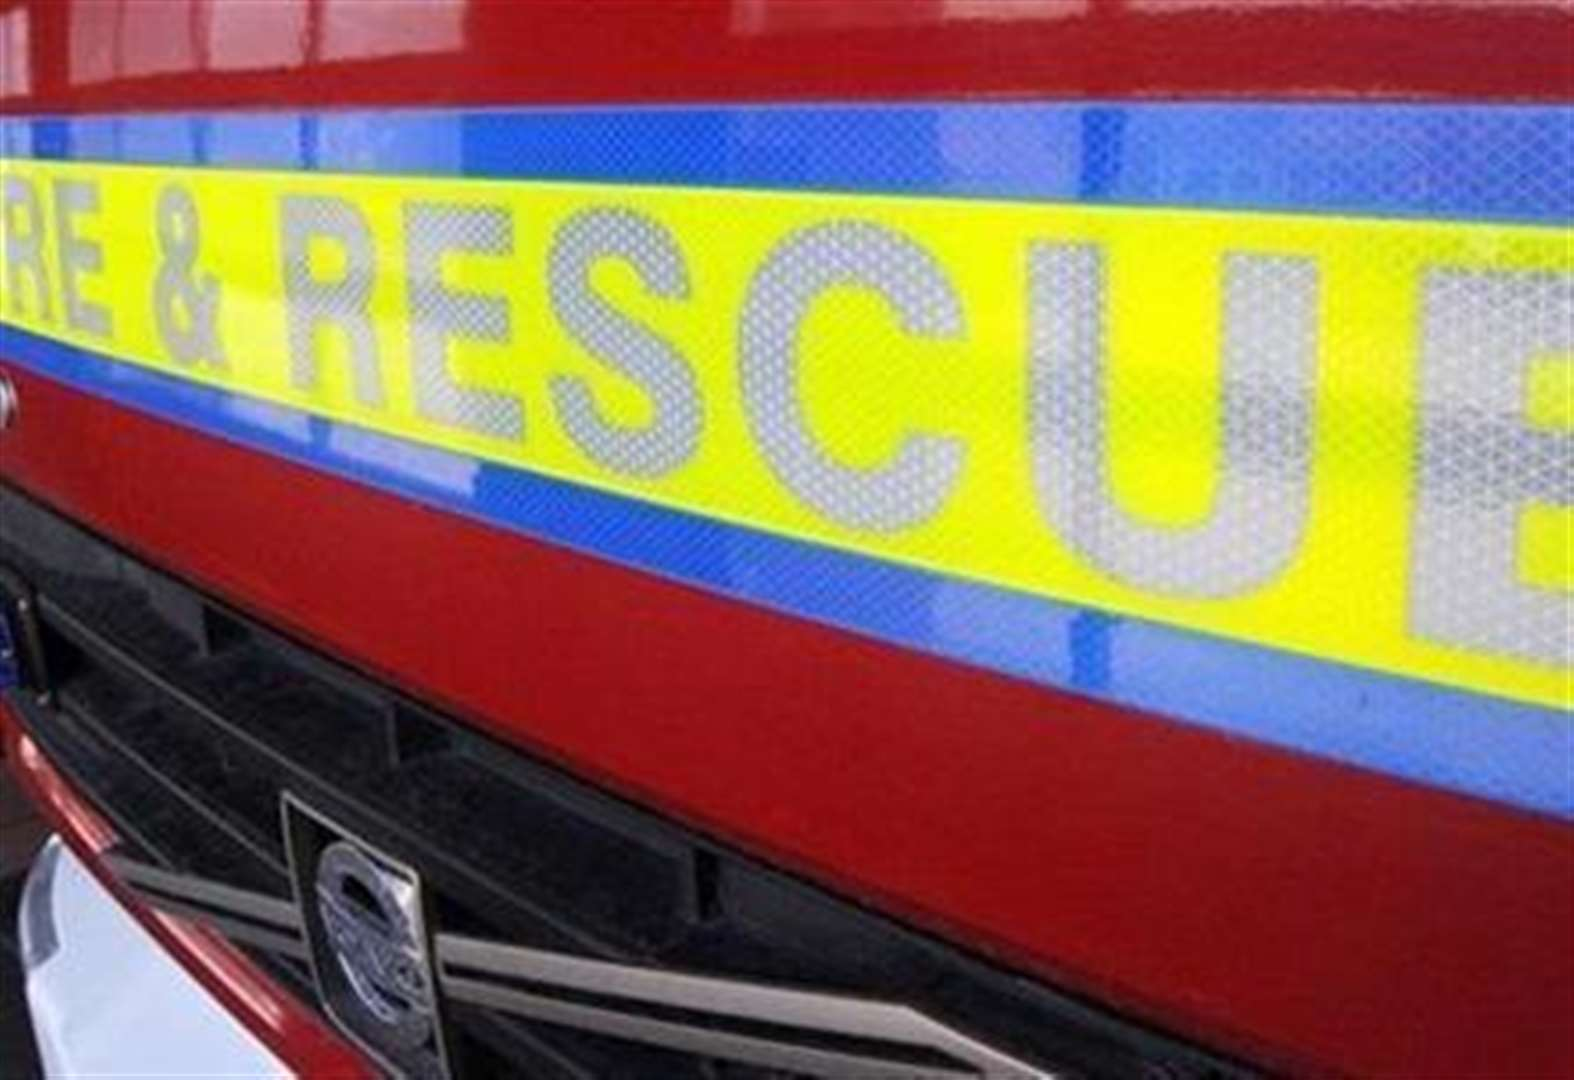 Fire damages shed and hedge in Grantham street